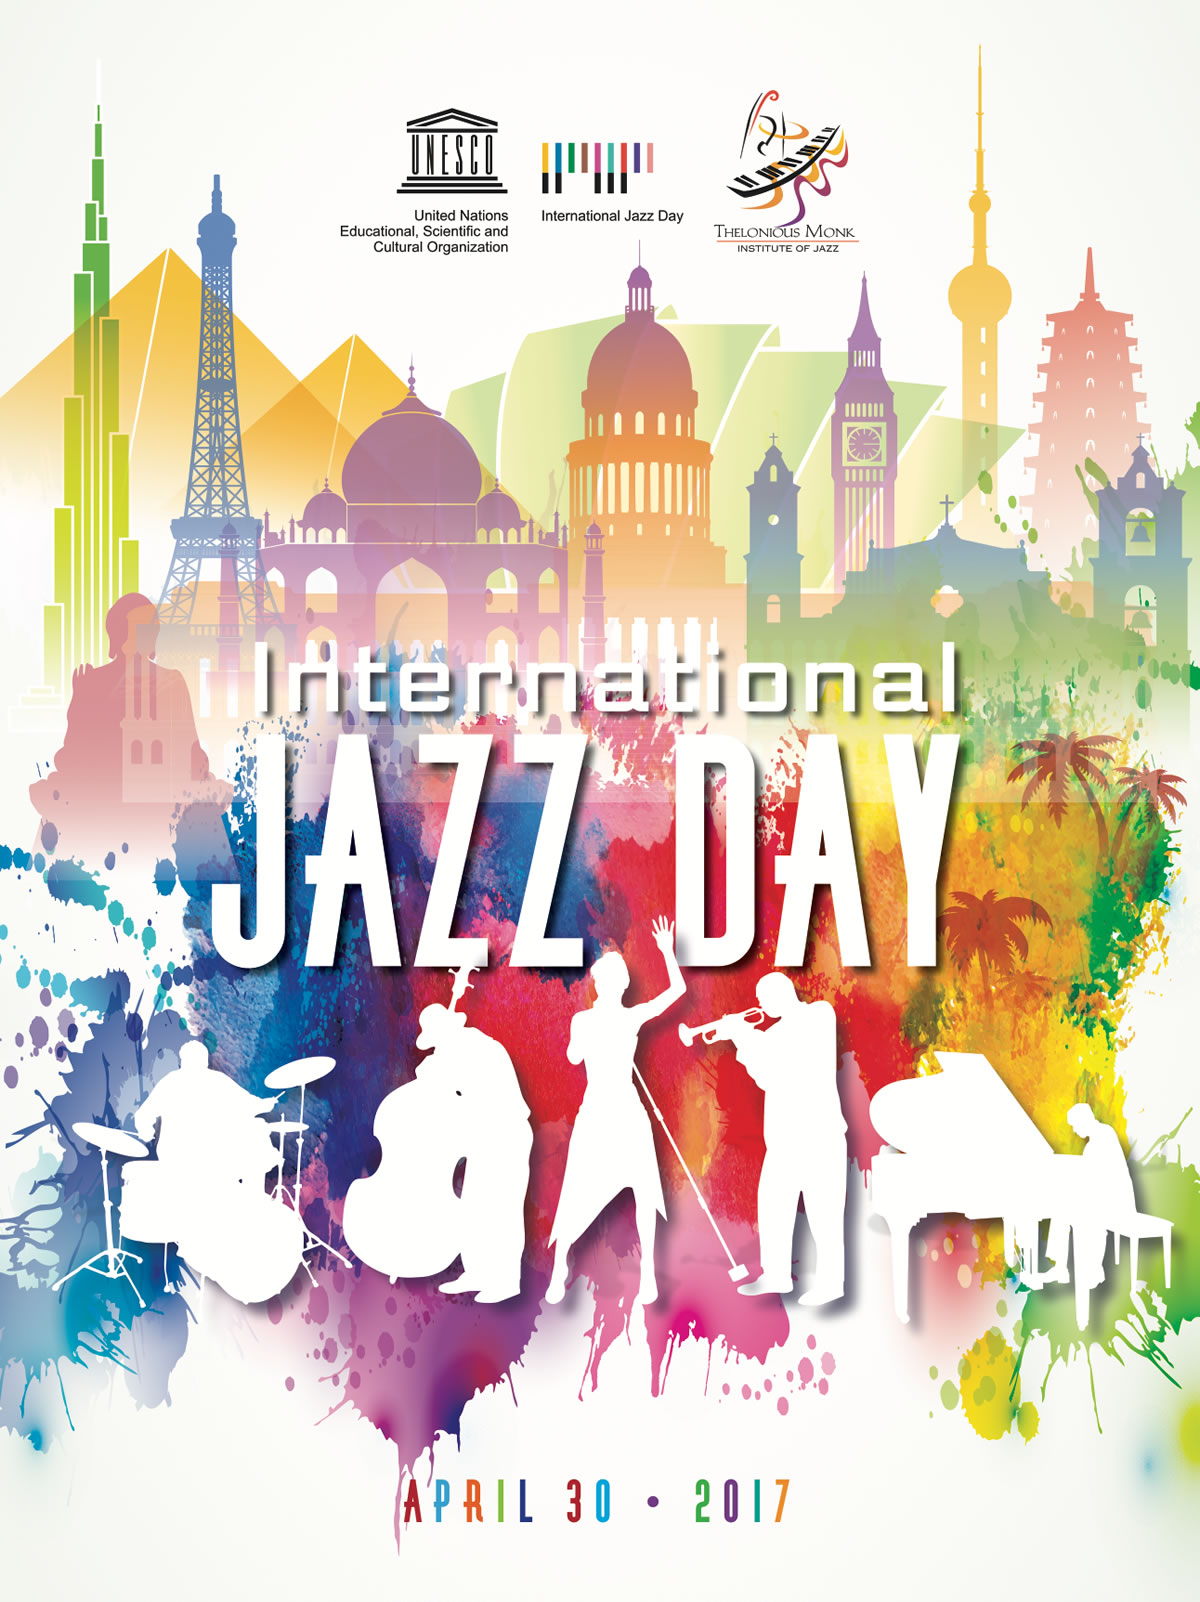 international jazz day celebrated on april 30 with live